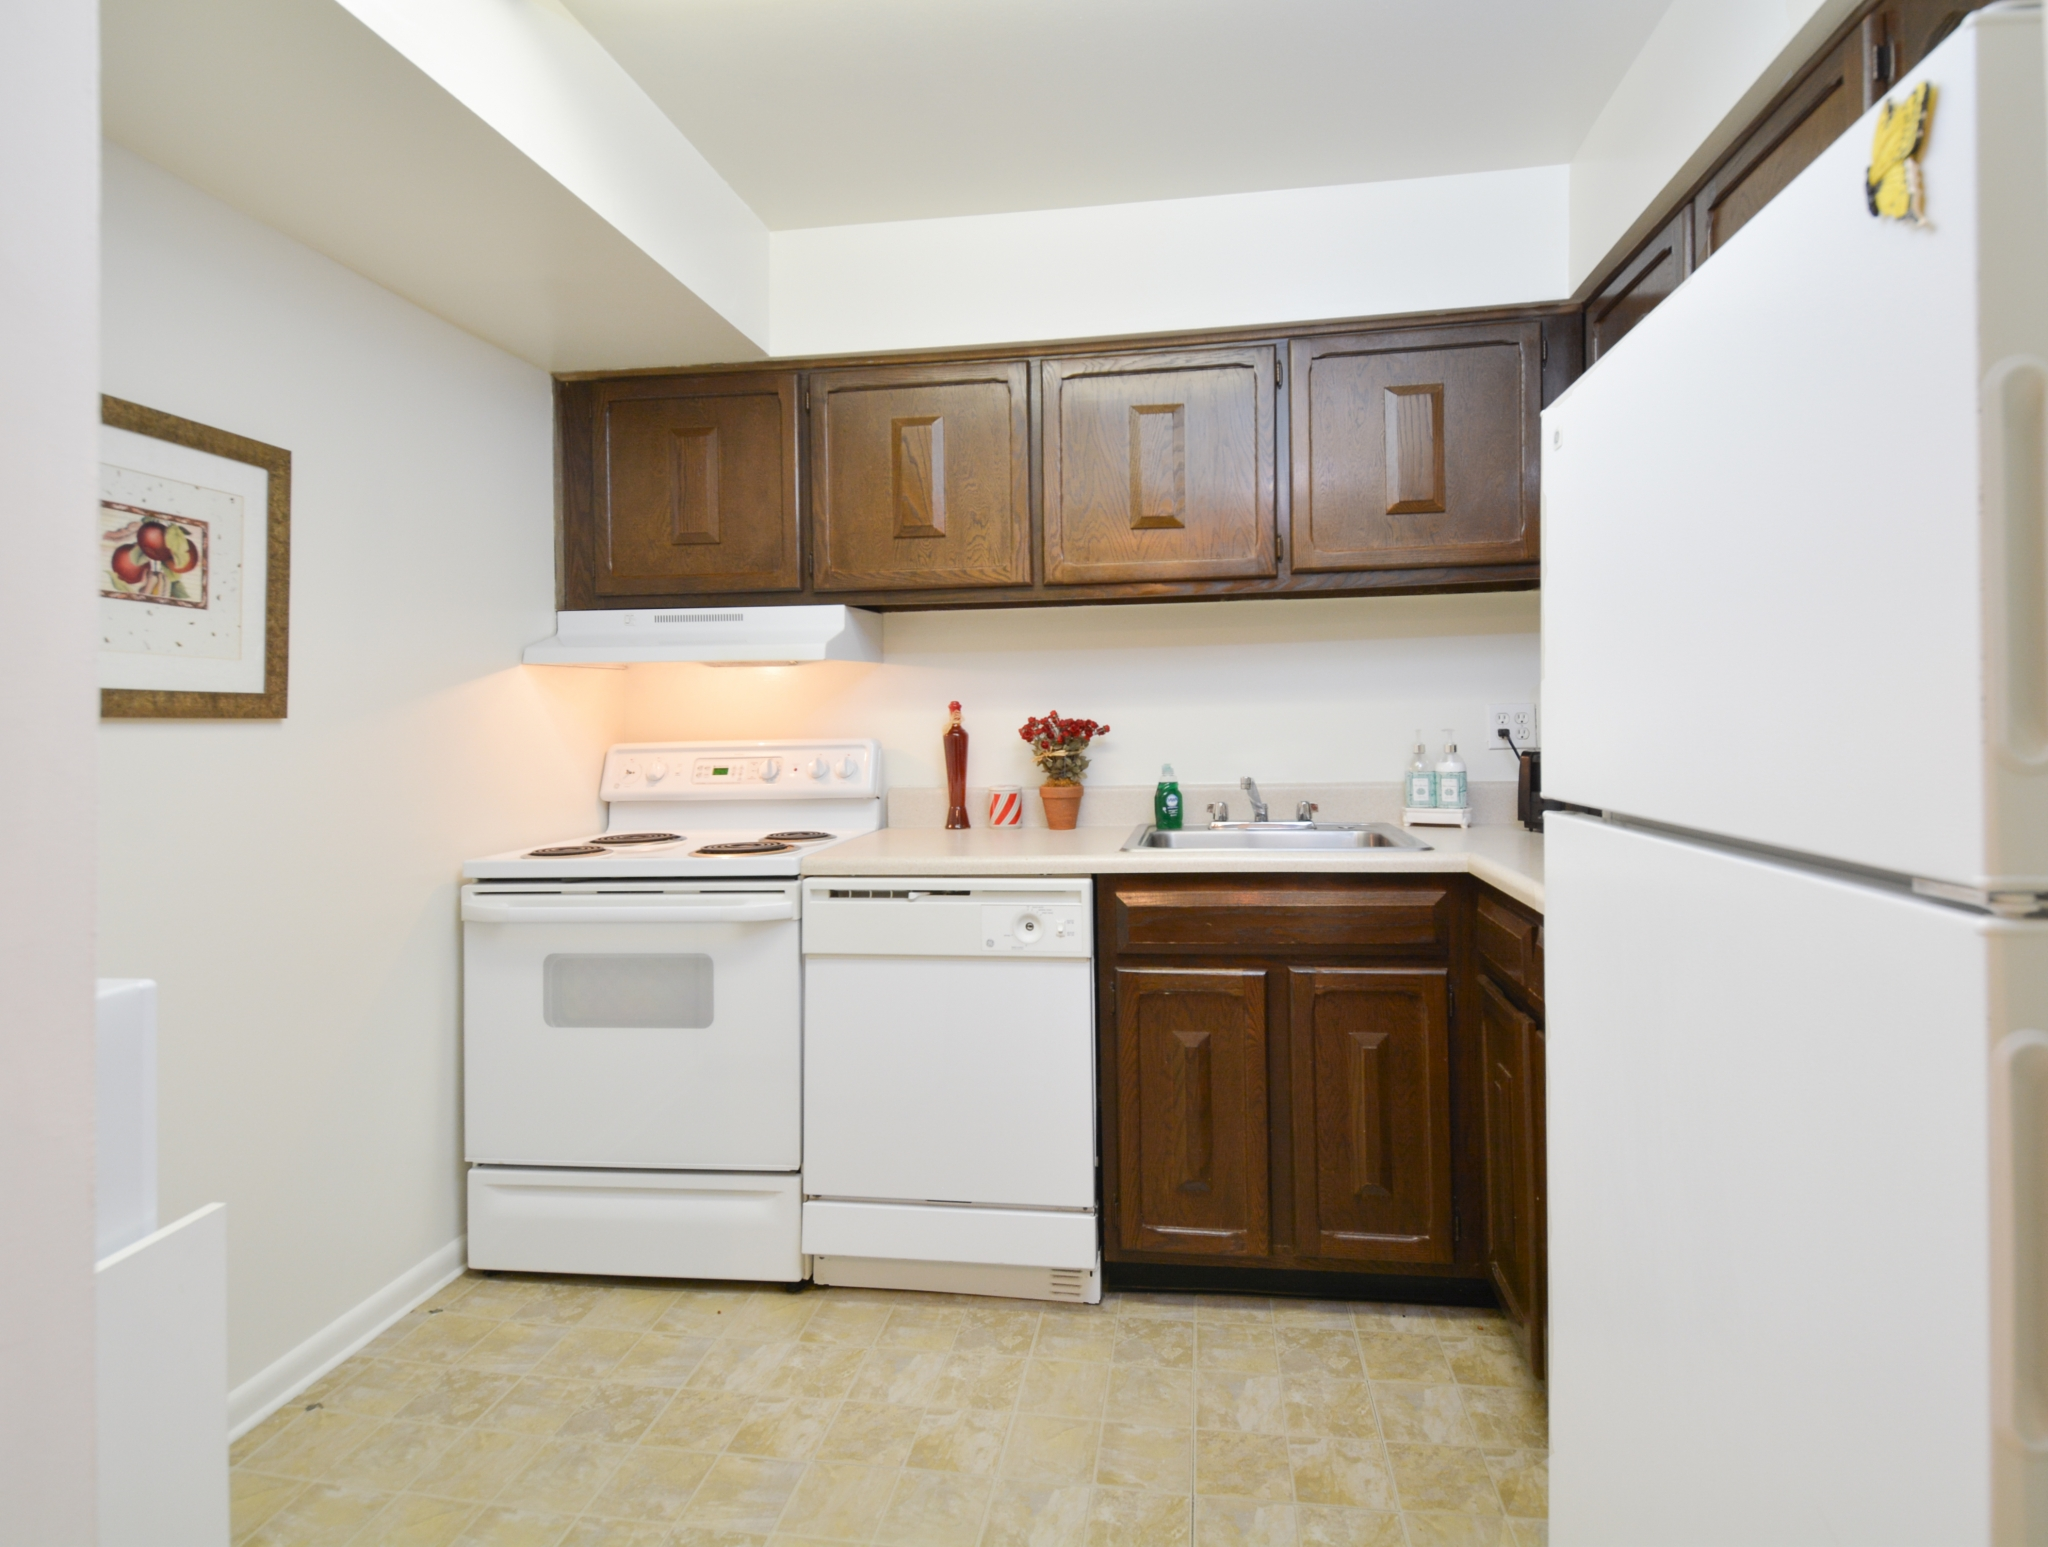 Bishop Hill Apartments In Secane Pa 610 626 4